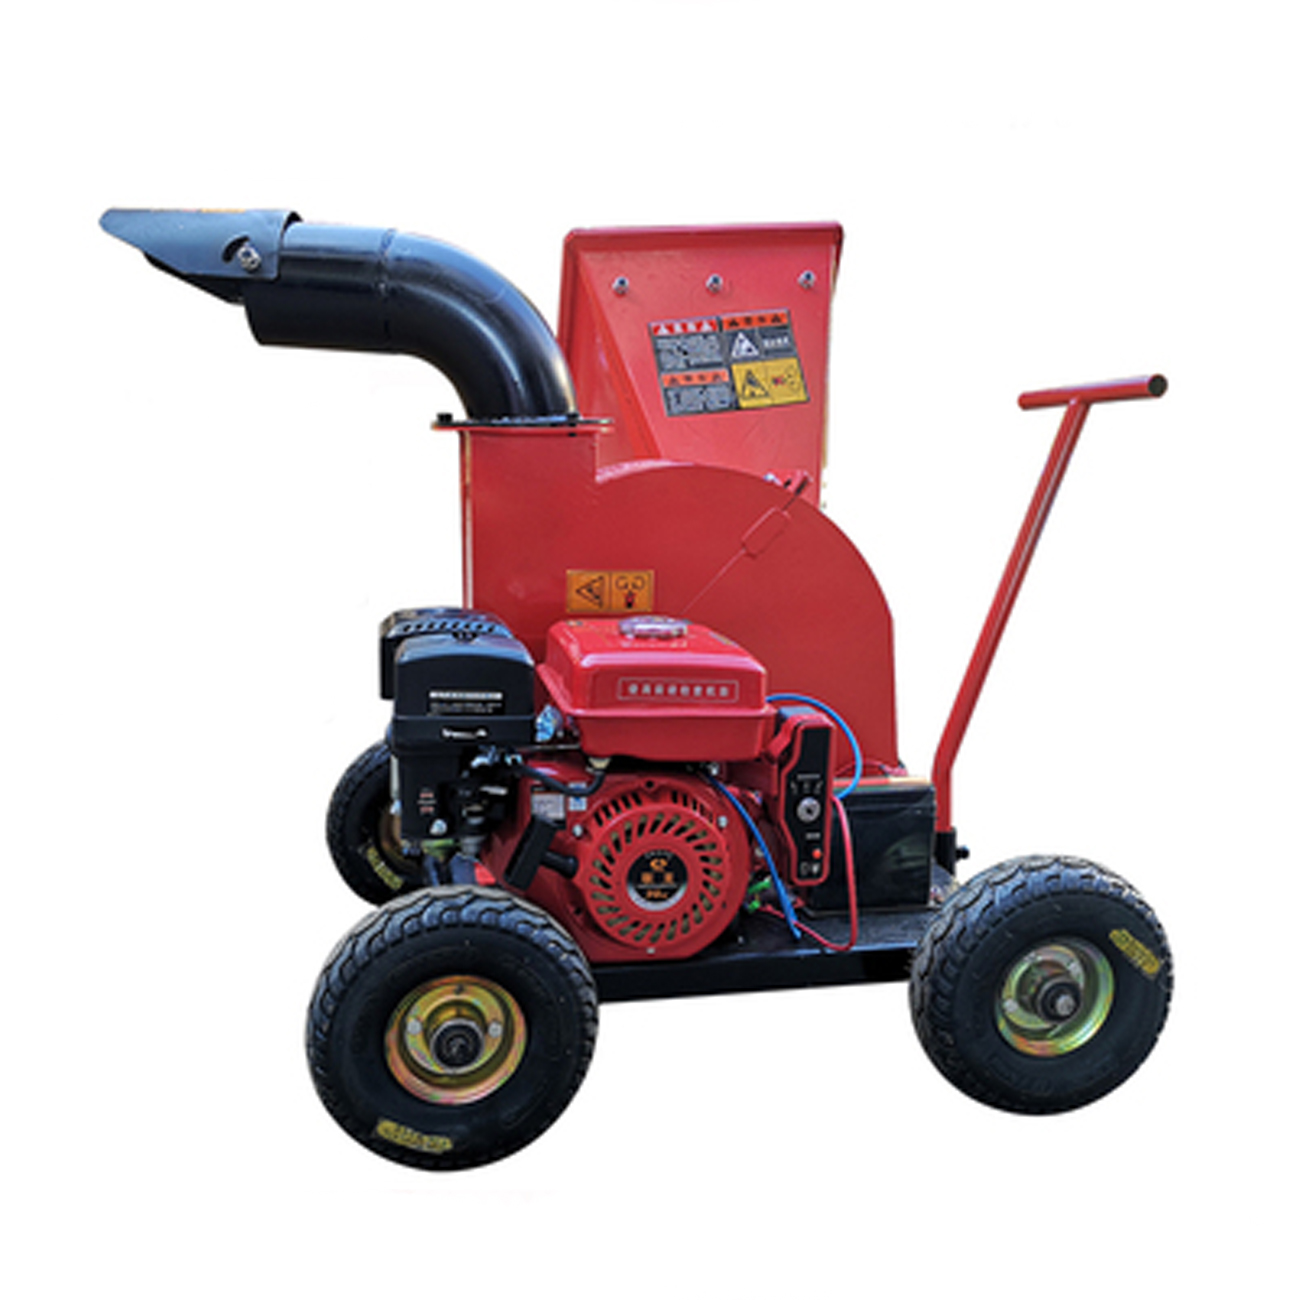 Tree Shredderorchard Wood ShredderGarden Leaf Tree Garden Chipperbranch Mobile Shredder Small Twig Shreddergasoline